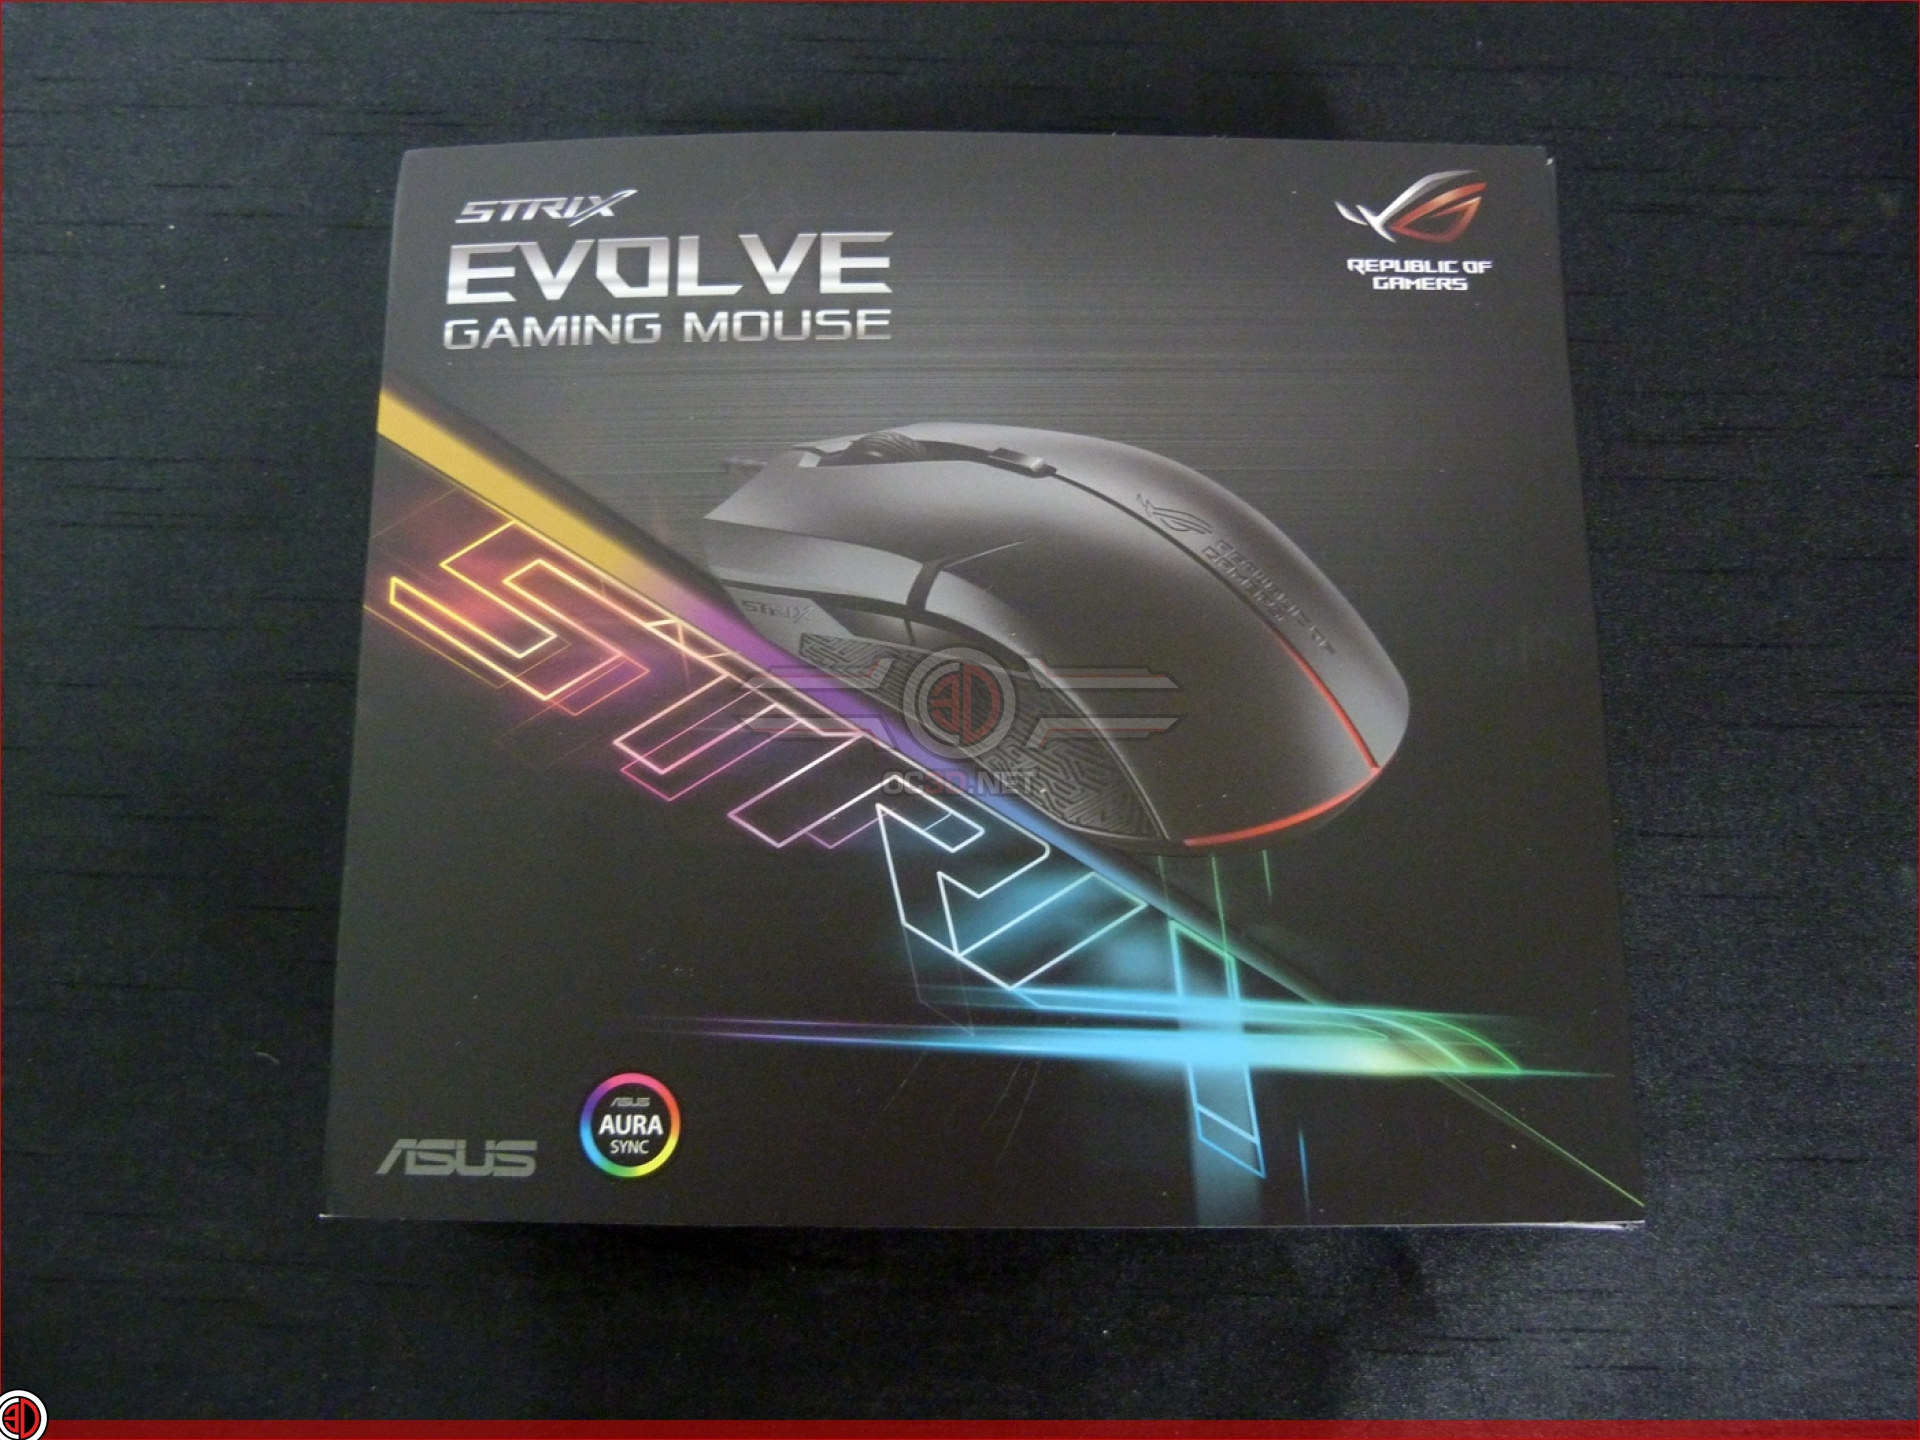 ASUS Strix Evolve Gaming Mouse Review | Up Close | Input